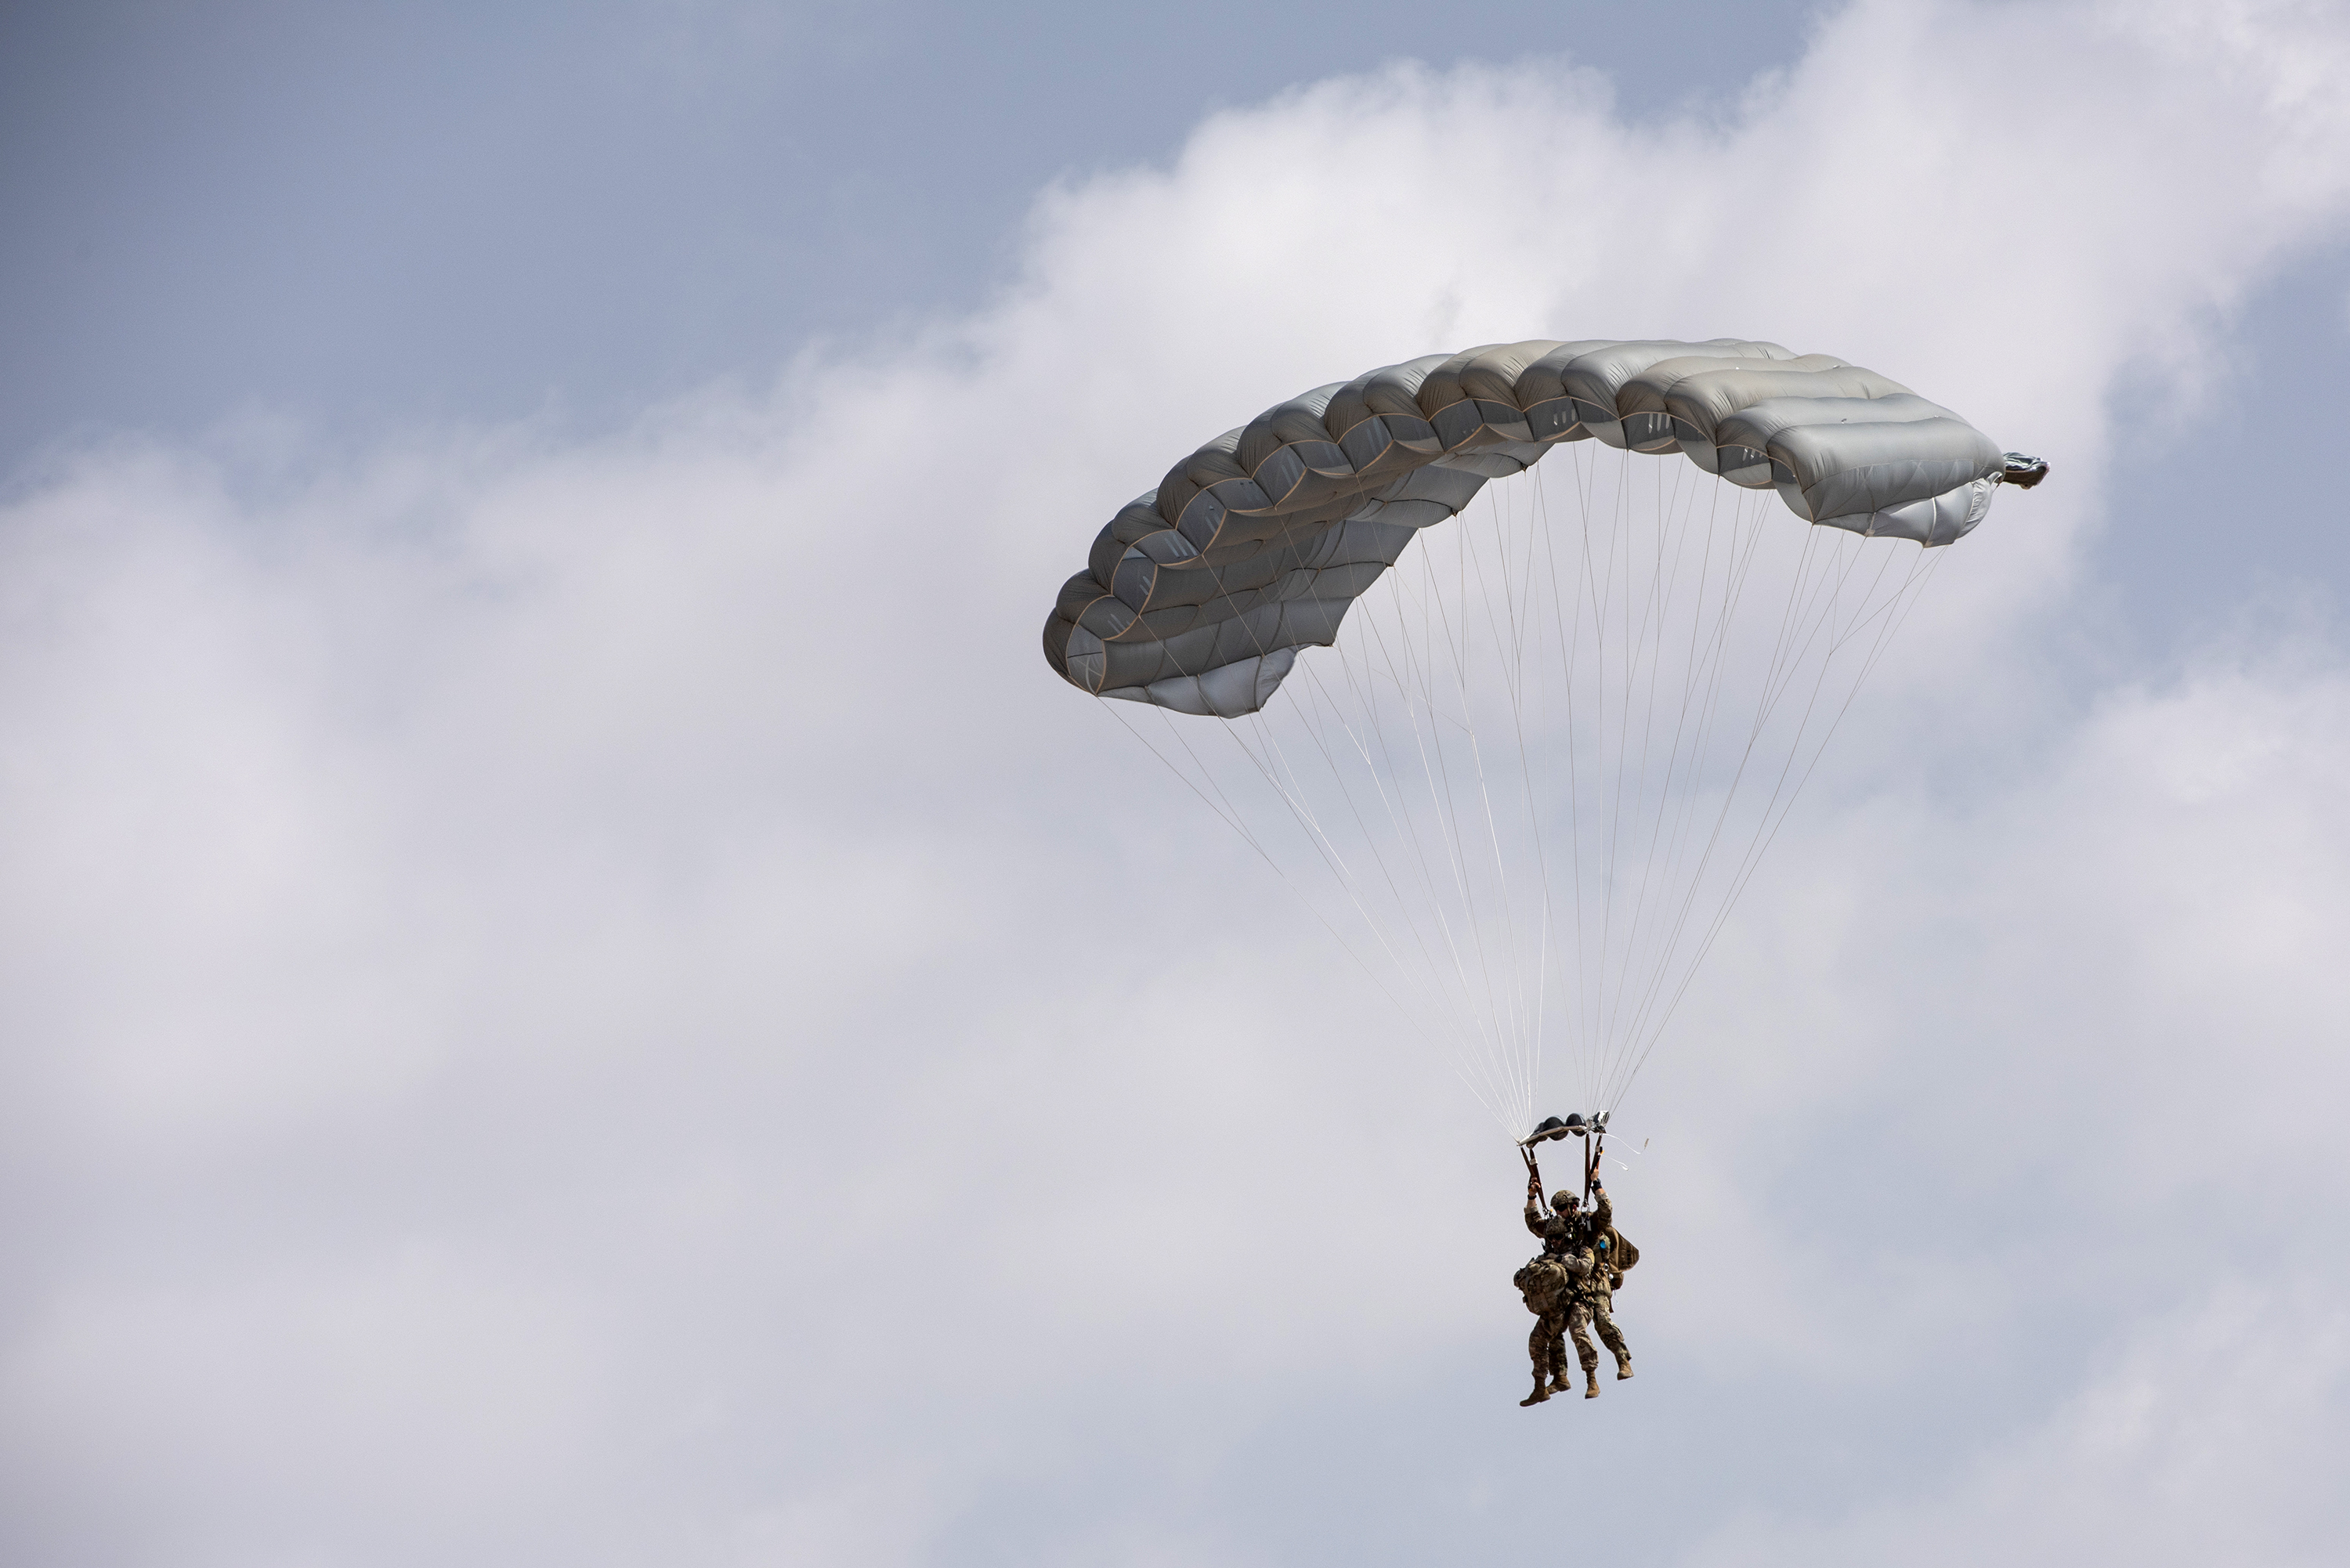 U.S. Air Force Pararescuemen from the 82nd Expeditionary Rescue Squadron participate in a high altitude, low-opening tandem free-fall jump to bring in a medical doctor, in Djibouti City, Djibouti, April 24, 2018. The free-fall jump was conducted as part of a joint training exercise. (U.S. Air National Guard photo by Master Sgt. Sarah Mattison)